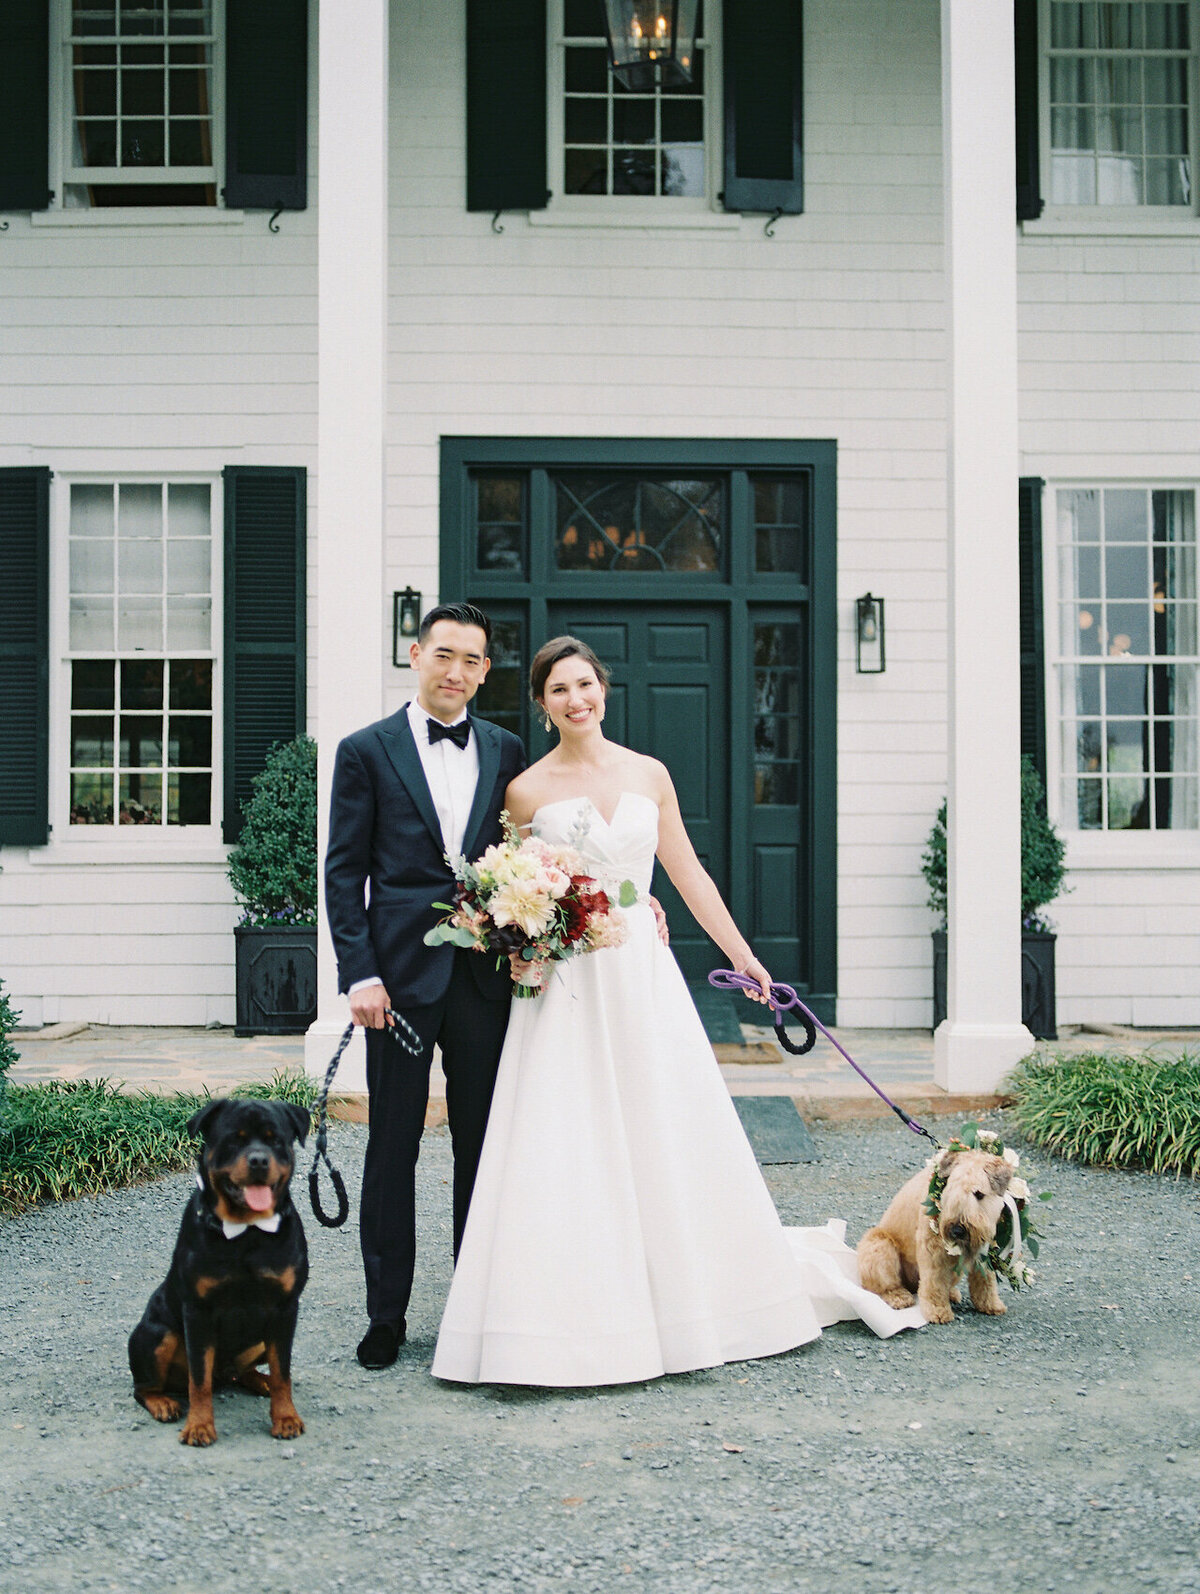 Bride and Groom Portraits with Dogs Robert Aveau for © Bonnie Sen Photography